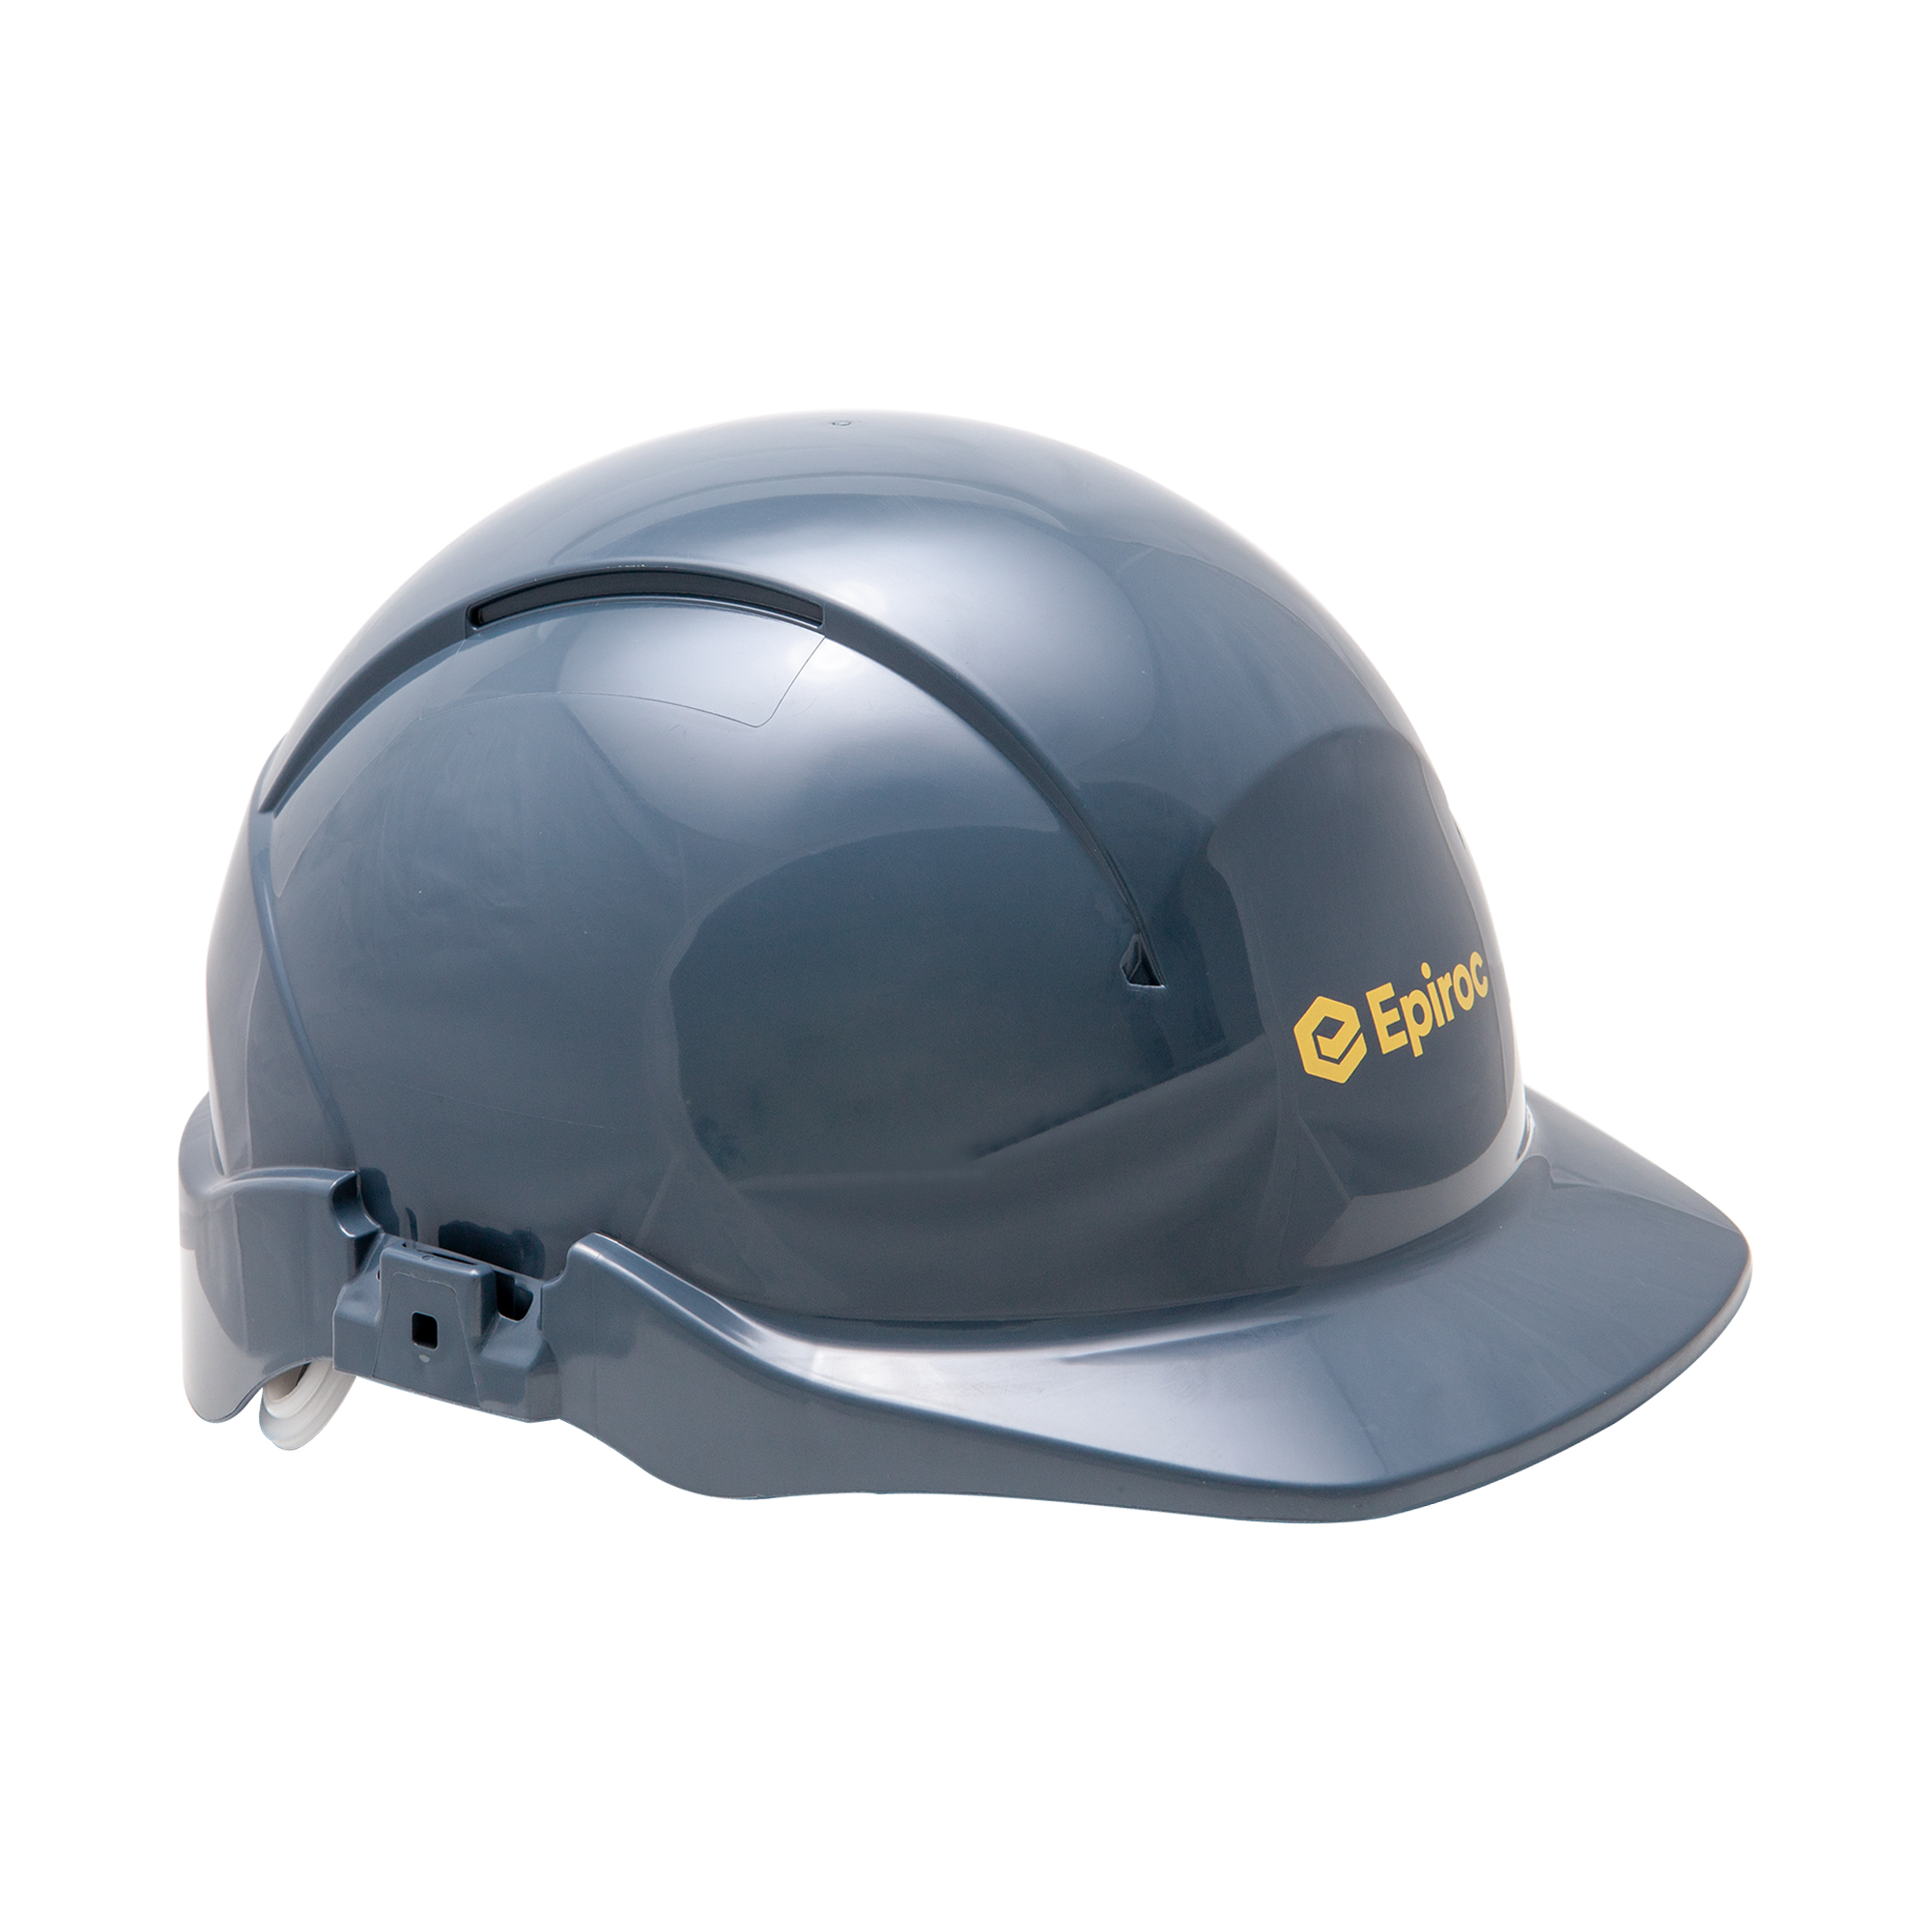 A light weighted helmet manufactured from tough ABS material. With an extented nape providing increased neck protection. The hydro-Flock high absorbent sweatband makes the helmet comfortable to wear along with the 6 point Terylene cradle and headband with a unique crown and rear ventilation system, providing one of the coolest helmets around.